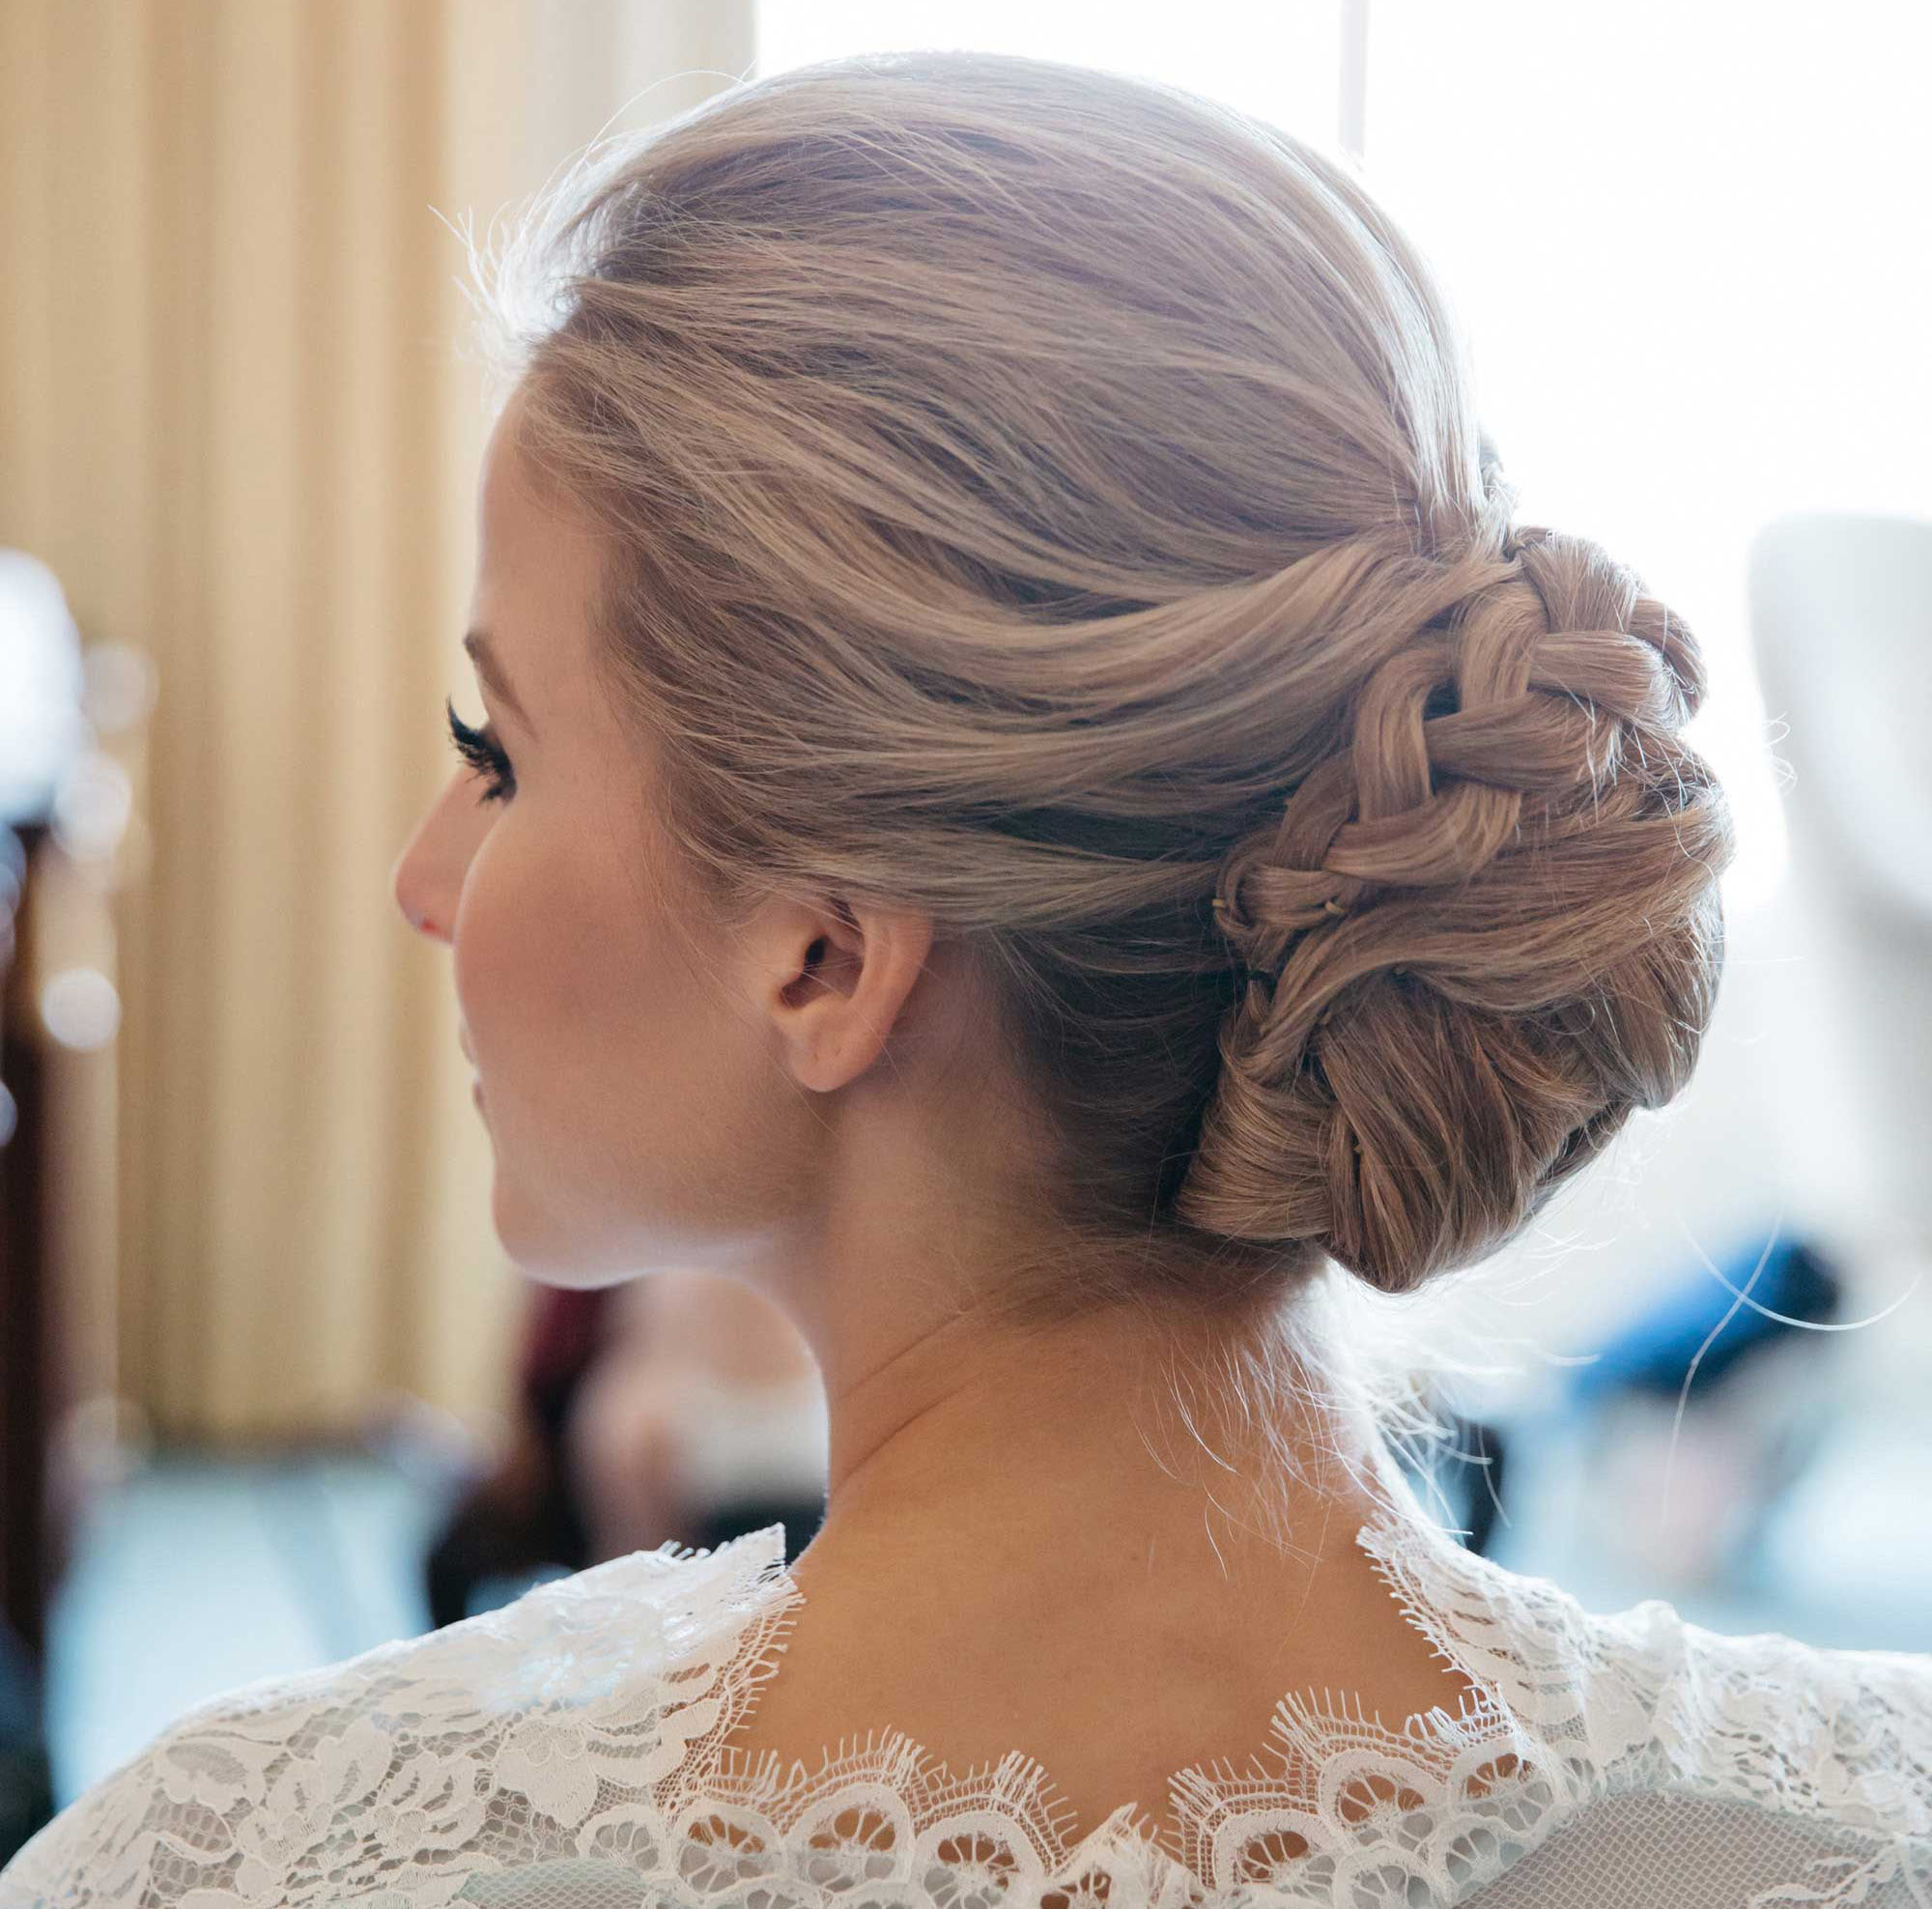 Braided Hairstyles: 5 Ideas For Your Wedding Look – Inside Weddings Throughout Newest Classic Twists And Waves Bridal Hairstyles (View 4 of 20)